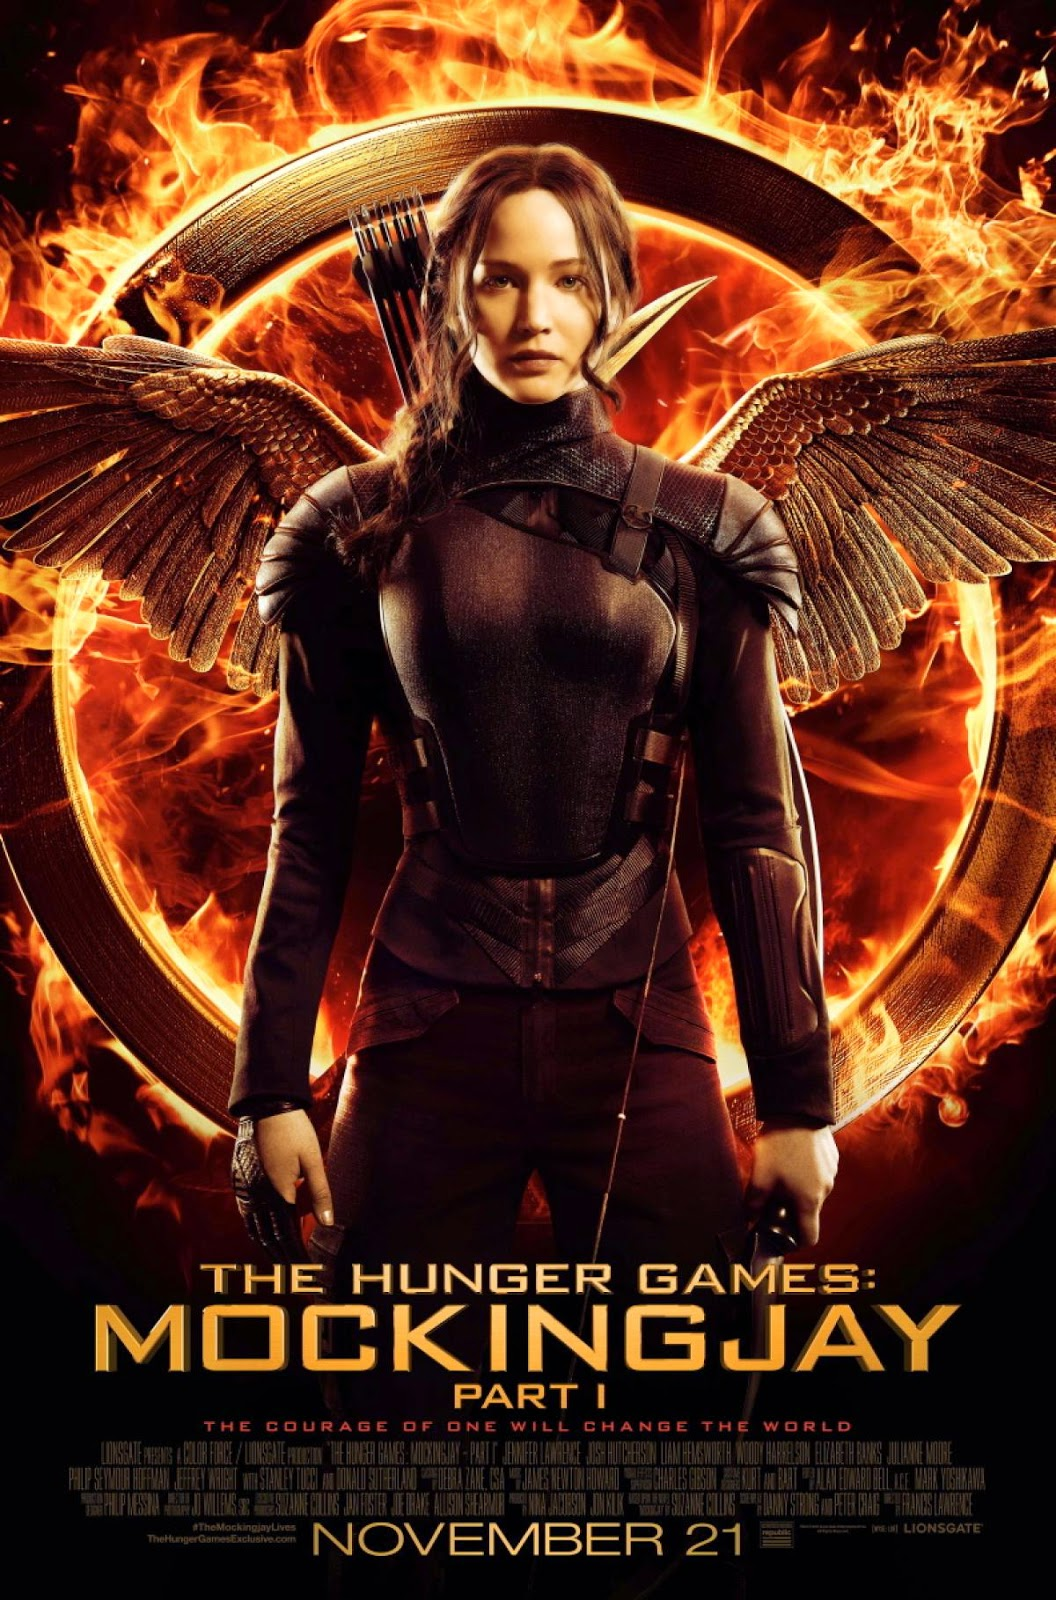 an analysis of the film the hunger games mocking jay part 1 Francis lawrence's the hunger games: mockingjay—part 1  (katniss narrates  the books, not the movies)  mockingjay hunger games  out her analysis of  his deteriorating looks and increasingly tic-ridden behavior.